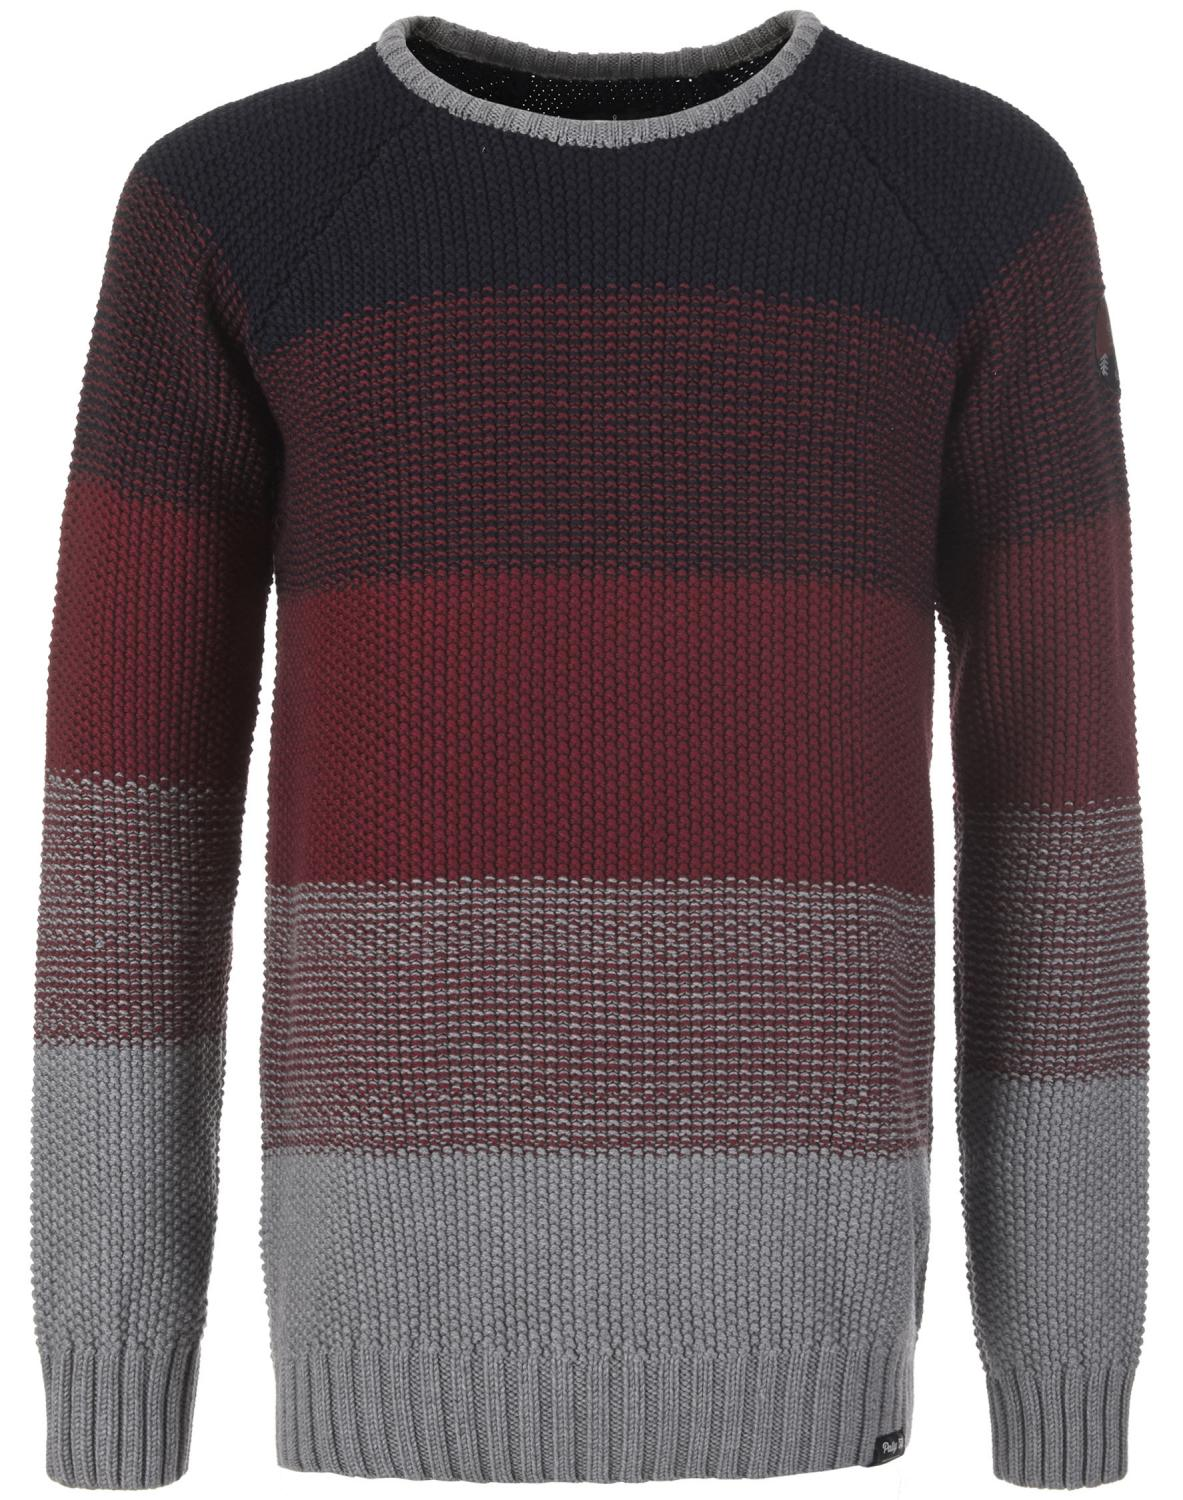 Knit Sweater Spectral